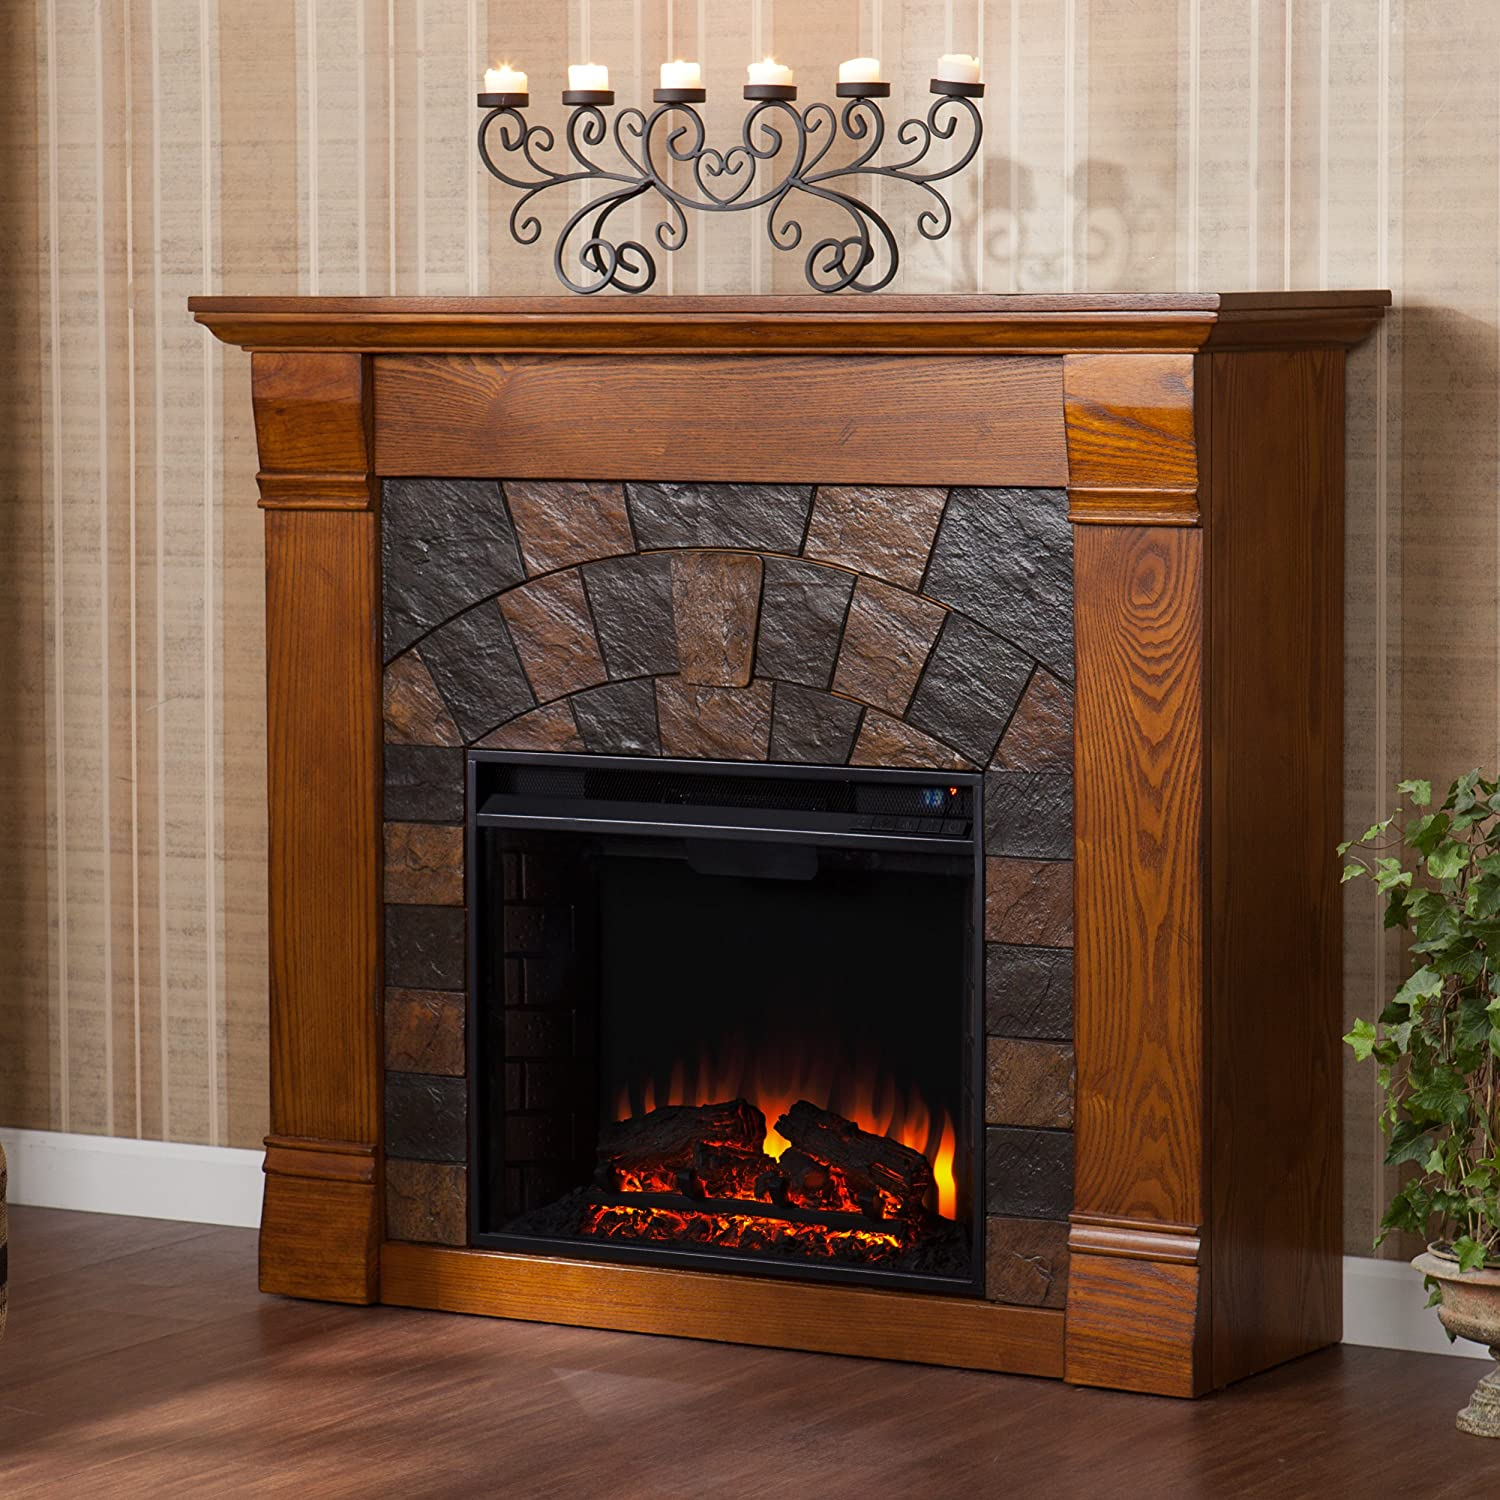 amazon com elkmont electric fireplace salem antique oak